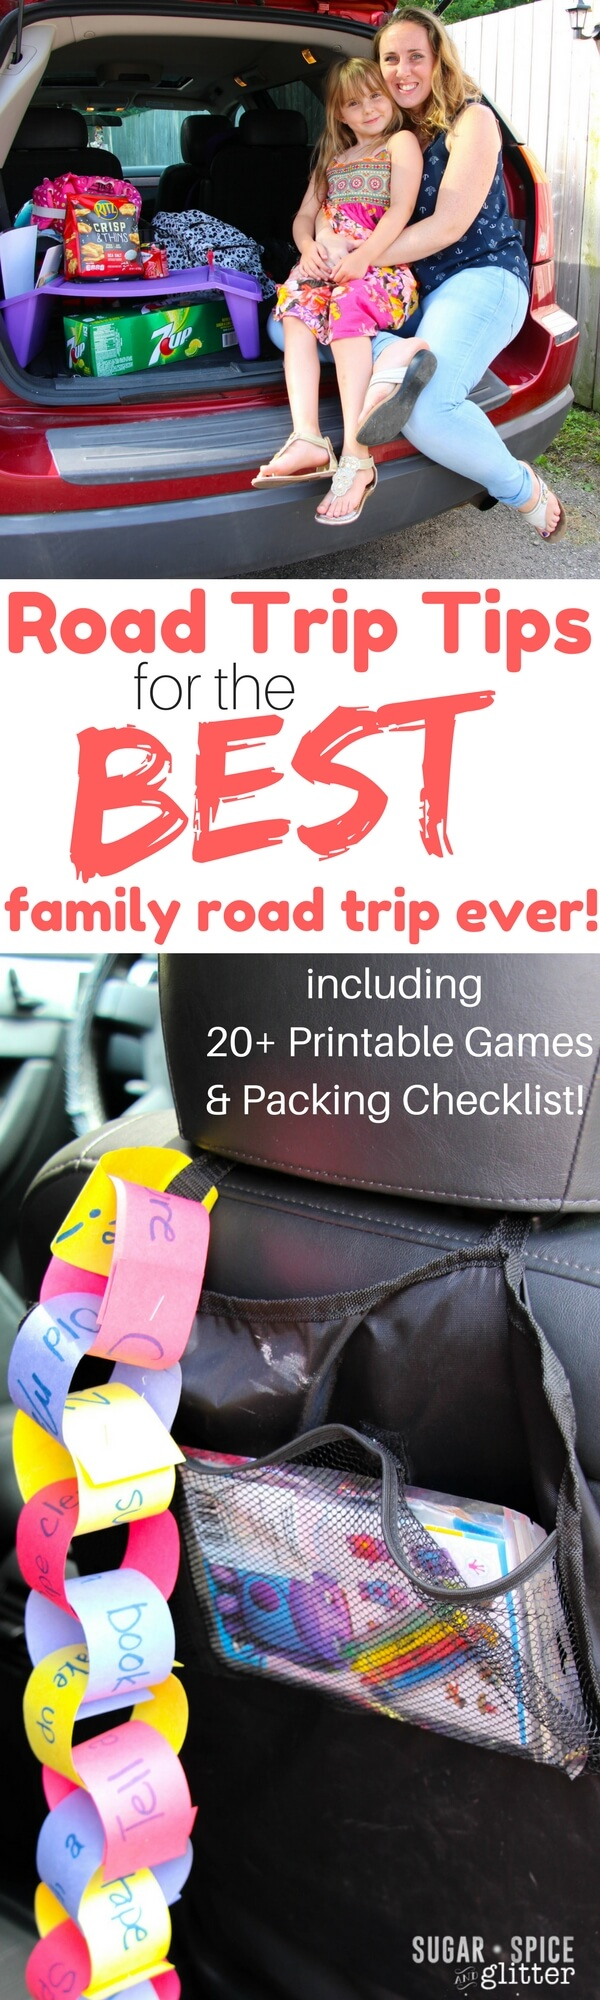 Awesome tips for the best family road trip ever, including activities and what to pack to keep everyone happy. Bonus printable packing checklist and 20+ Printable Road Trip Games for Kids.